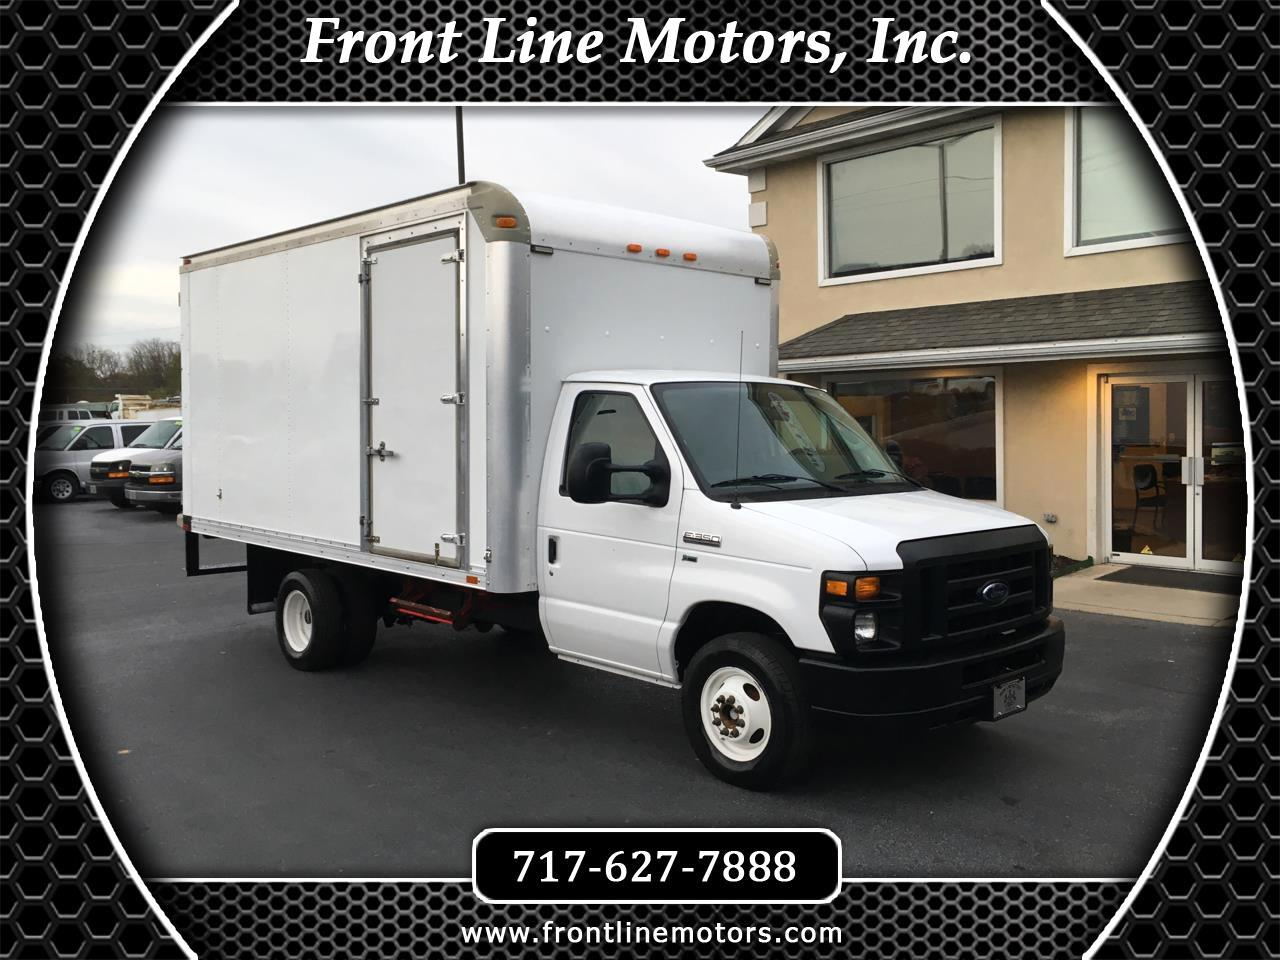 2012 Ford Econoline Commercial Cutaway E-350 Super Duty 176